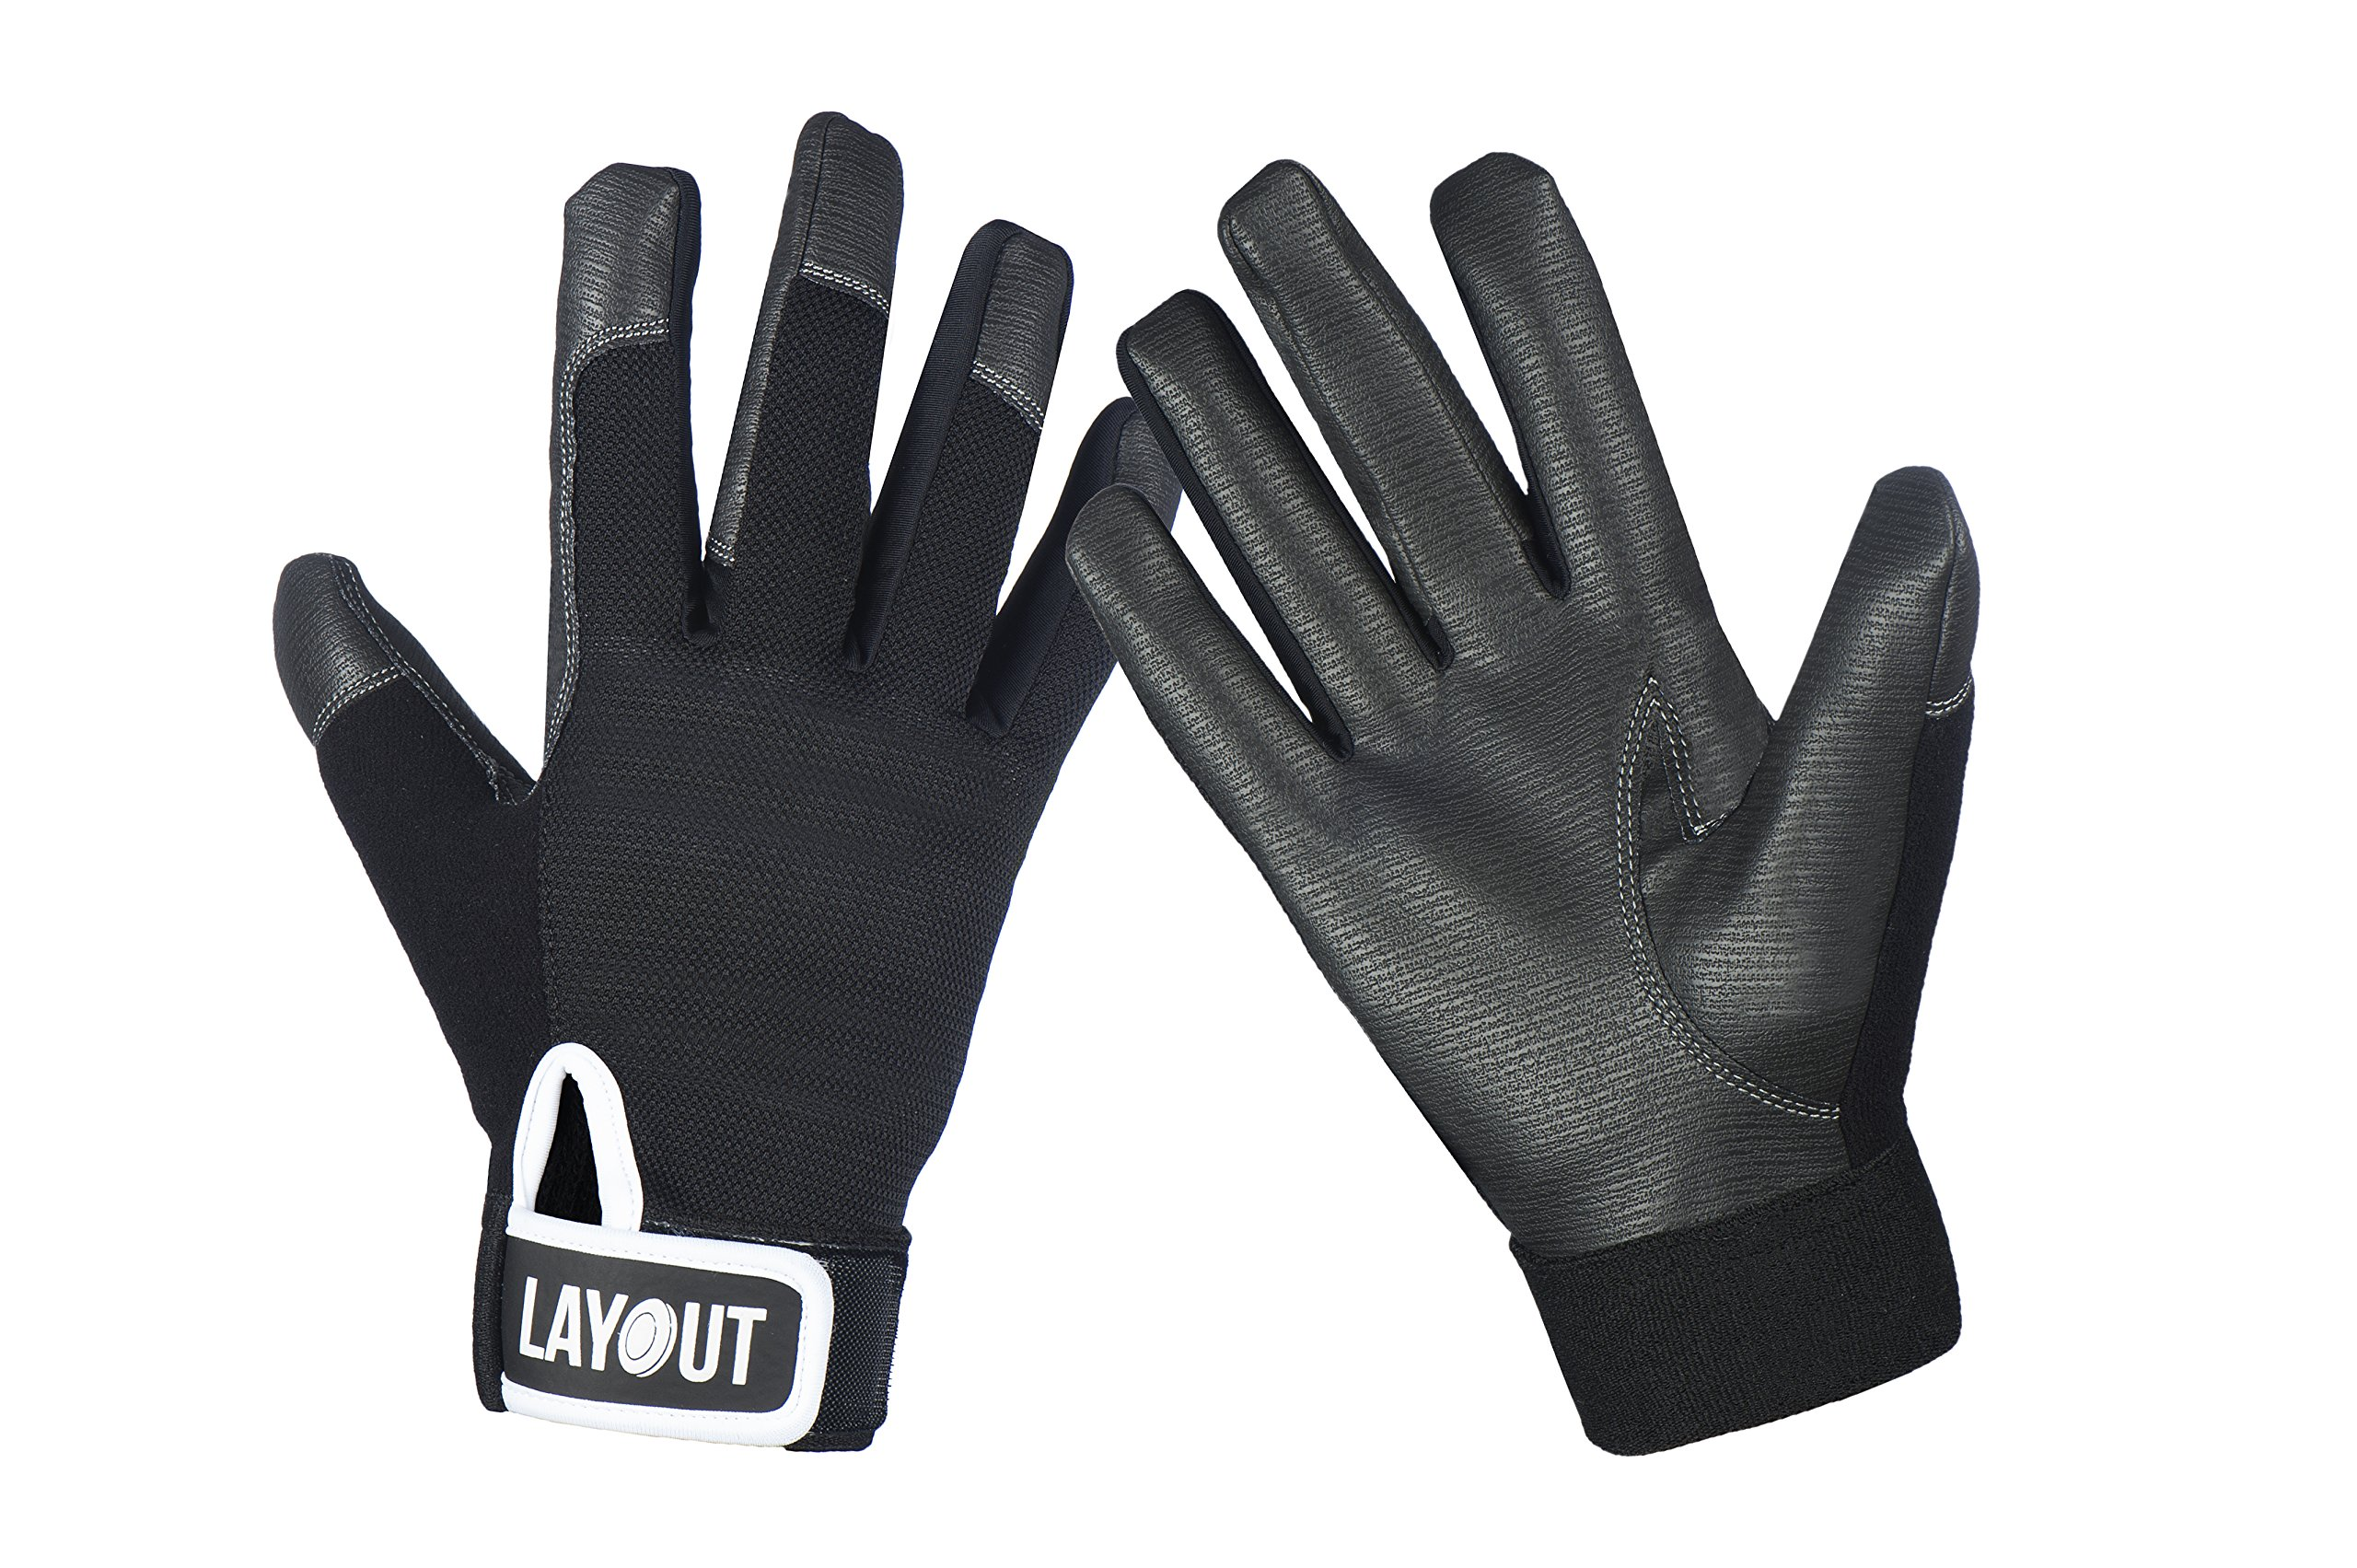 Layout Ultimate Frisbee Gloves - Ultimate Grip and Friction to Enhance Your Game! (M)